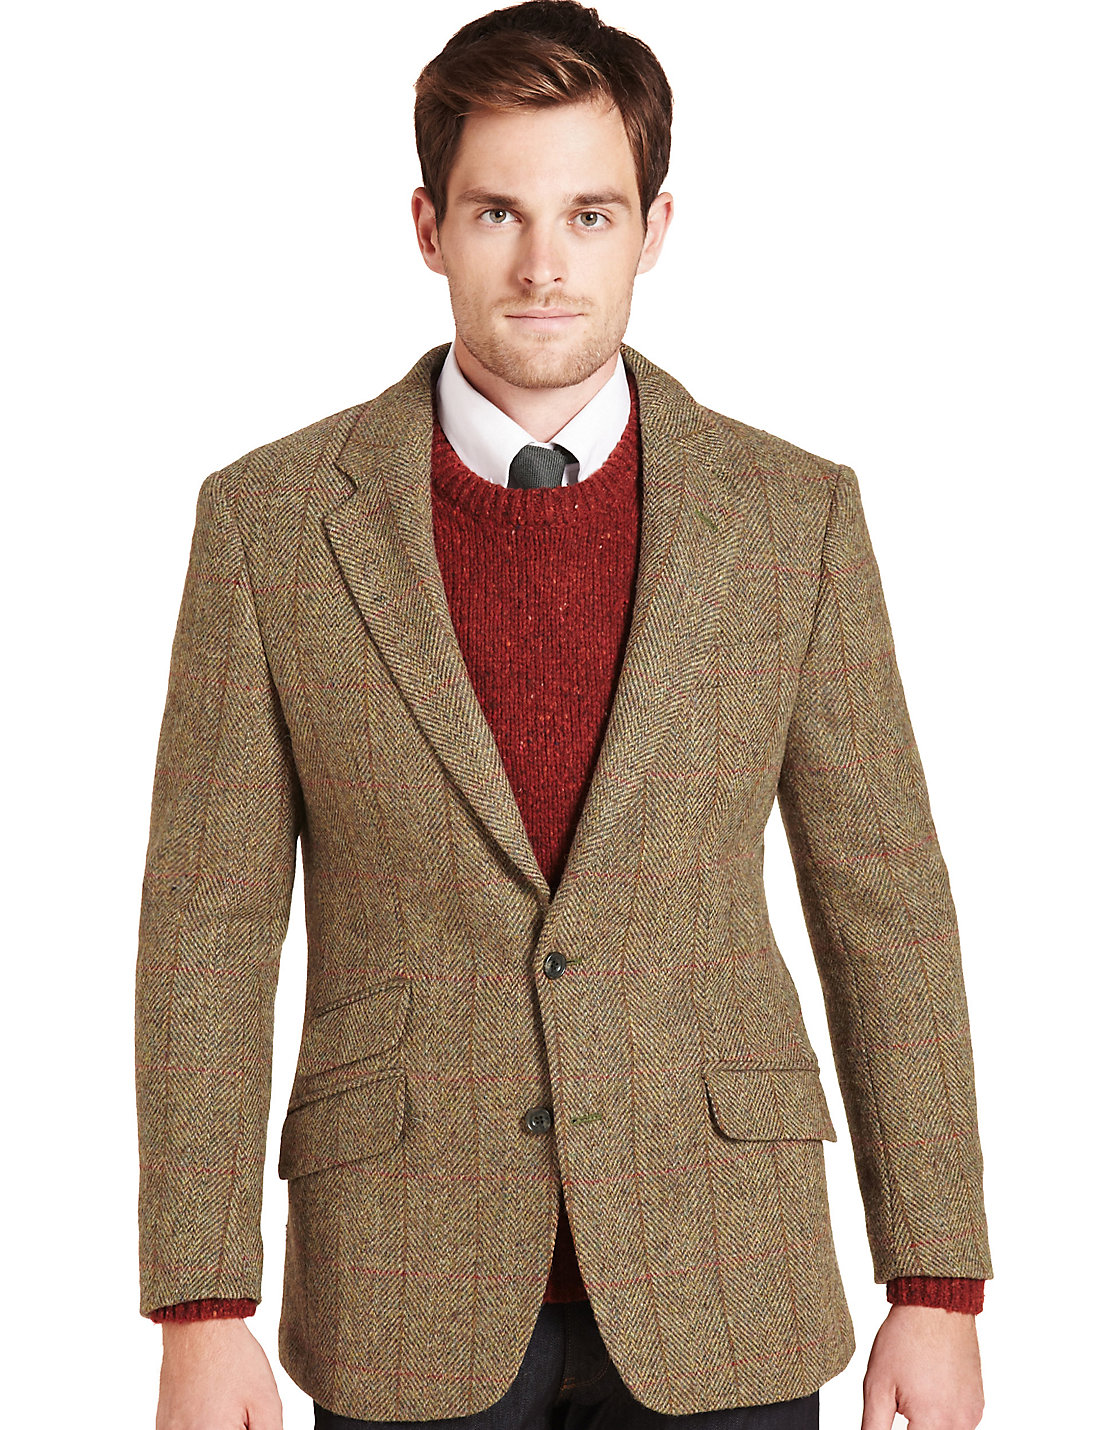 Big & Tall Luxury Pure Wool 2 Button Harris Tweed Checked Jacket | M&